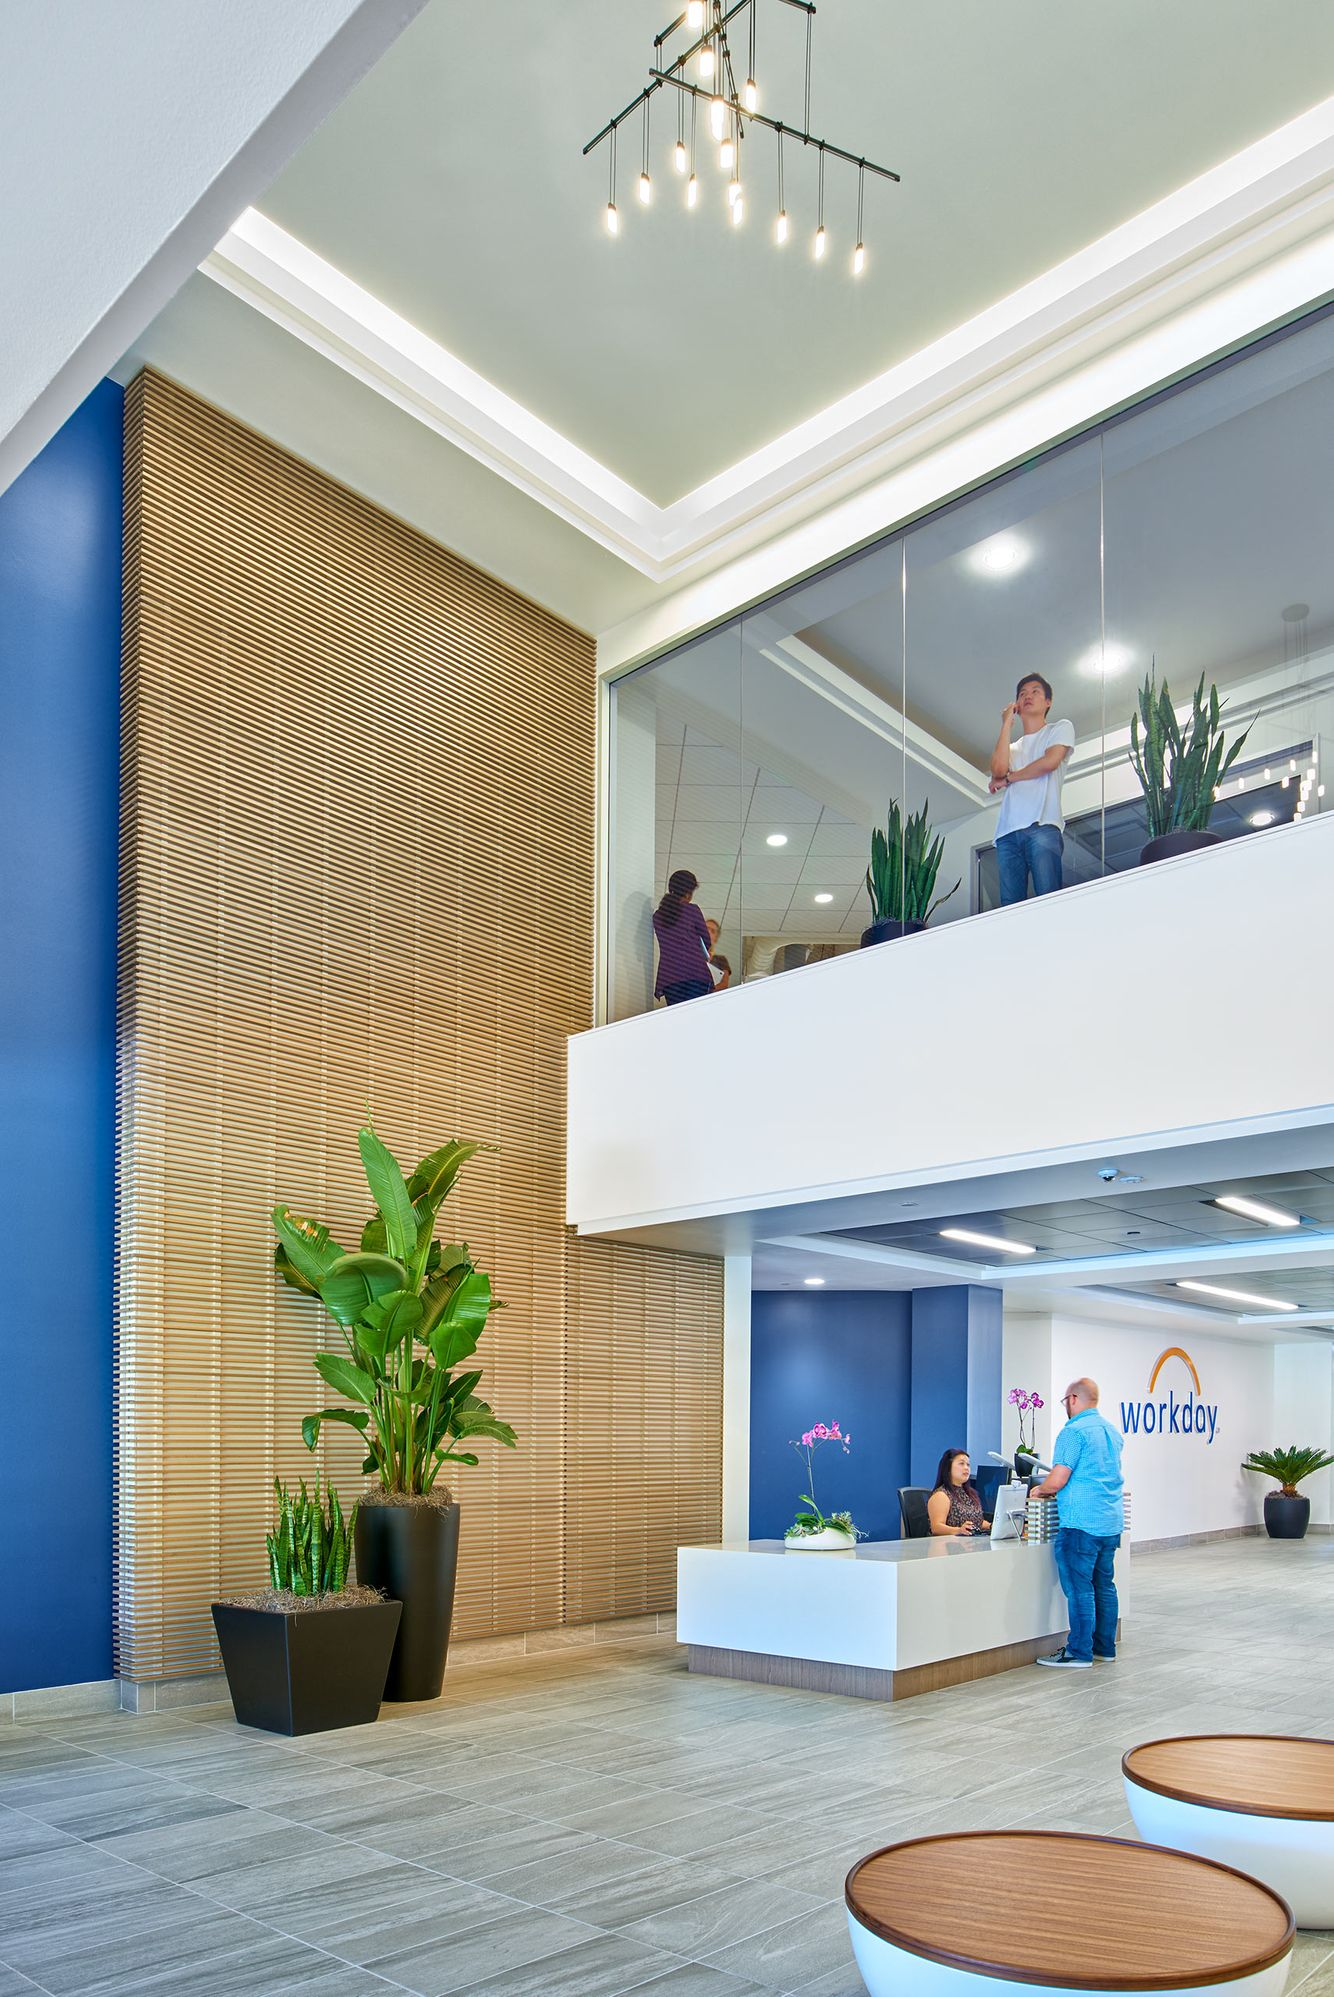 building lobby and Workday